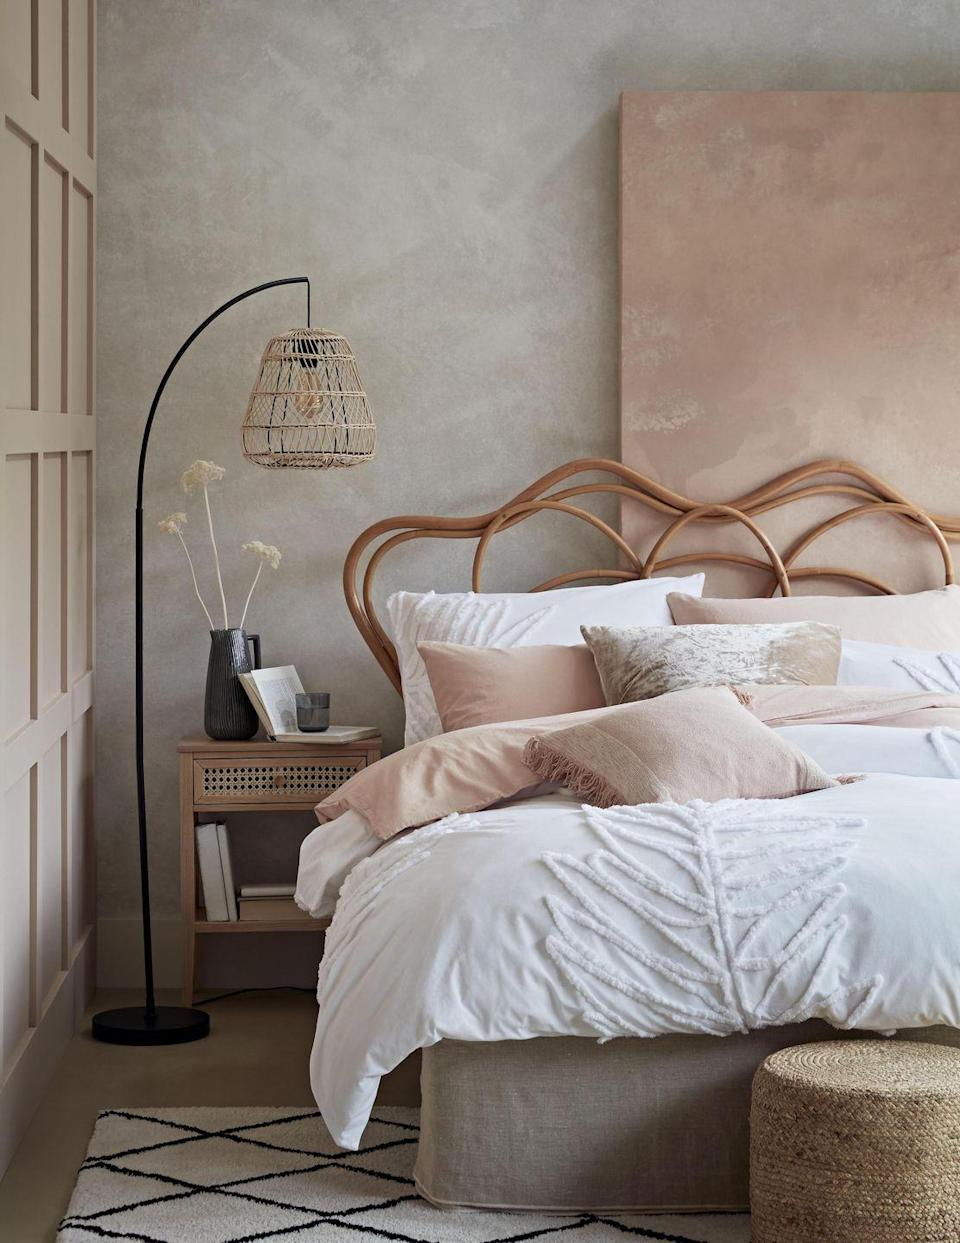 """<p>This soft, handcrafted look is characterised by a harmonious palette of earthy hues and natural materials, designed to create a calming and relaxed interior.</p><p>Texture is key, adding pattern and depth through tufted textiles and simple, unrefined ceramics, whilst lightweight woven rattan is used across pendant lighting and artisanal steam bent headboards.</p><p>• Shop the look at <a href=""""https://www.habitat.co.uk/"""" rel=""""nofollow noopener"""" target=""""_blank"""" data-ylk=""""slk:Habitat"""" class=""""link rapid-noclick-resp"""">Habitat</a></p>"""